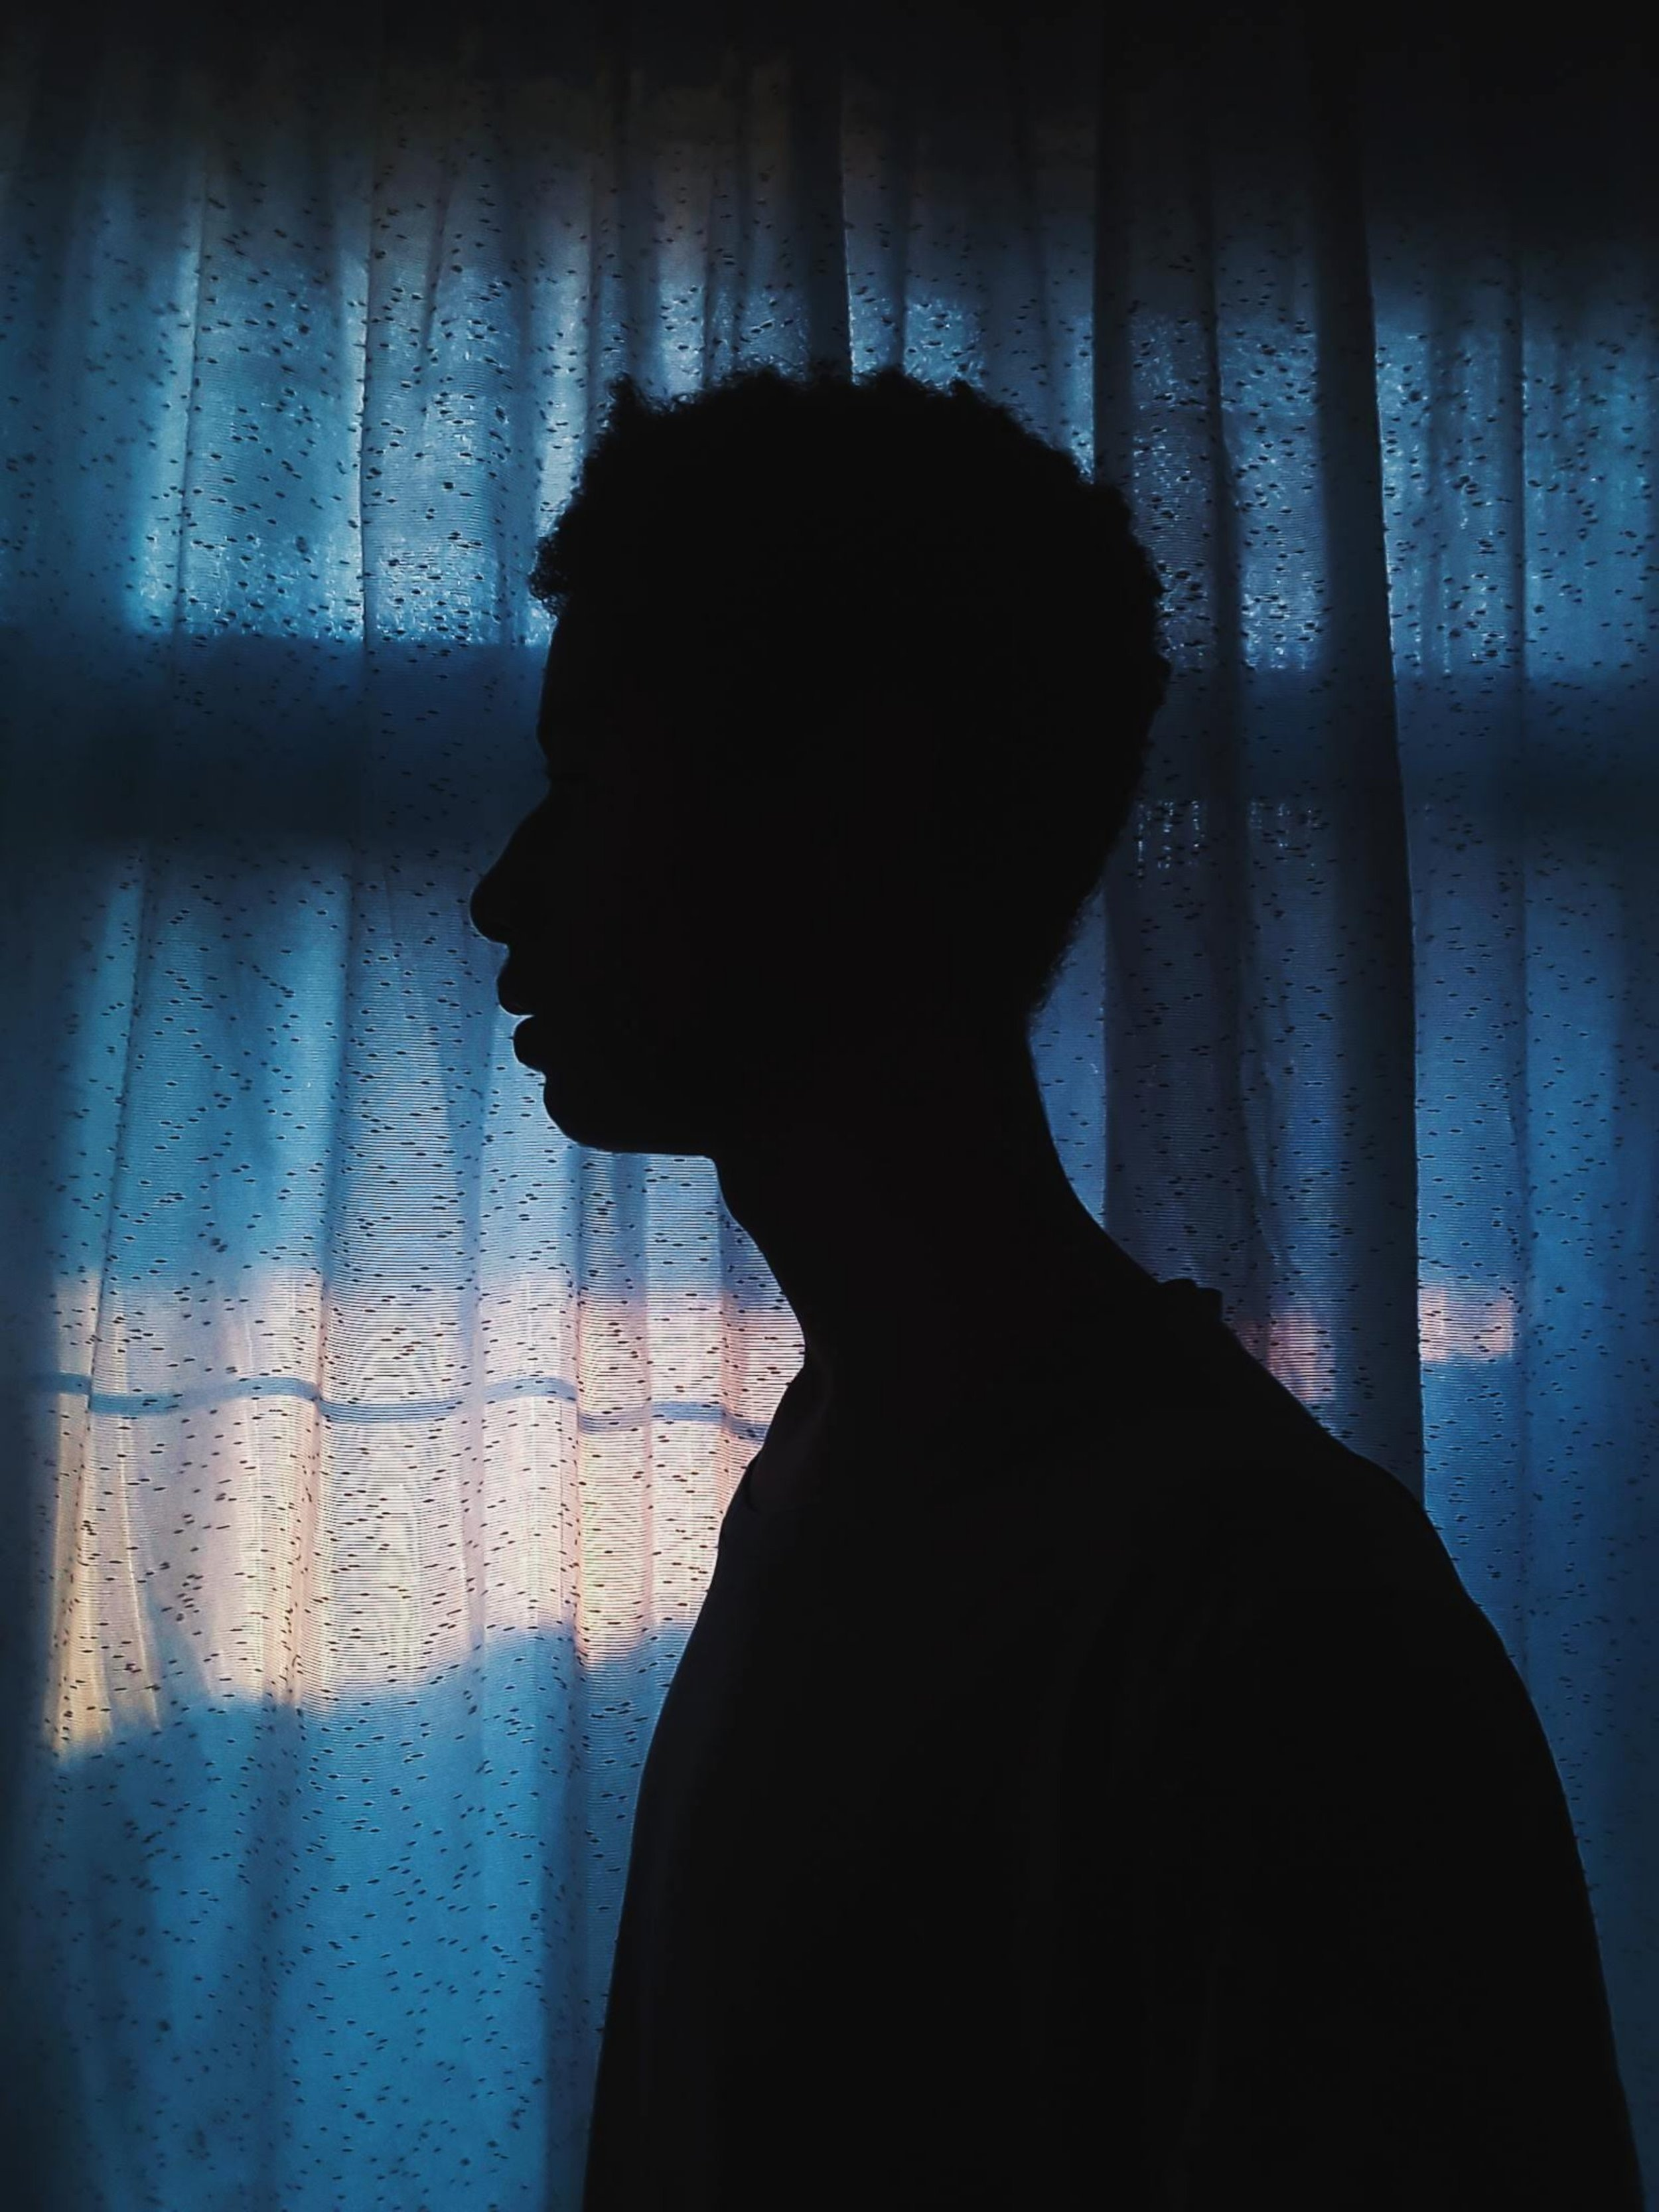 shadow of a man in front of a curtain